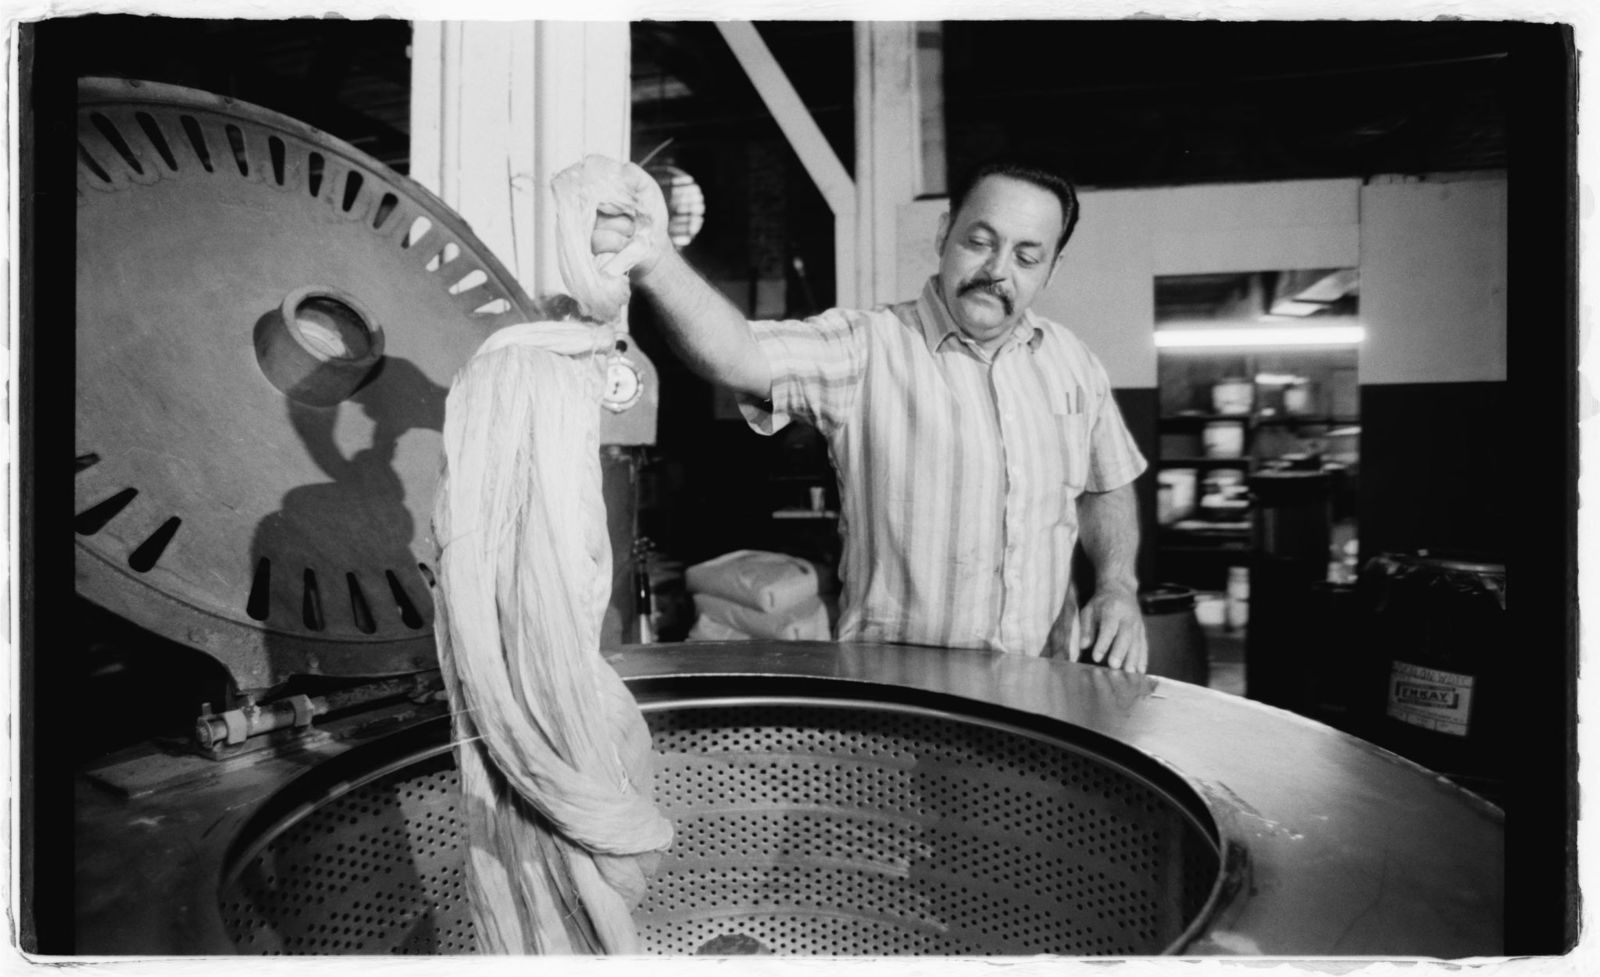 Machine operator Nelson Beniquez washing silk in tanks.